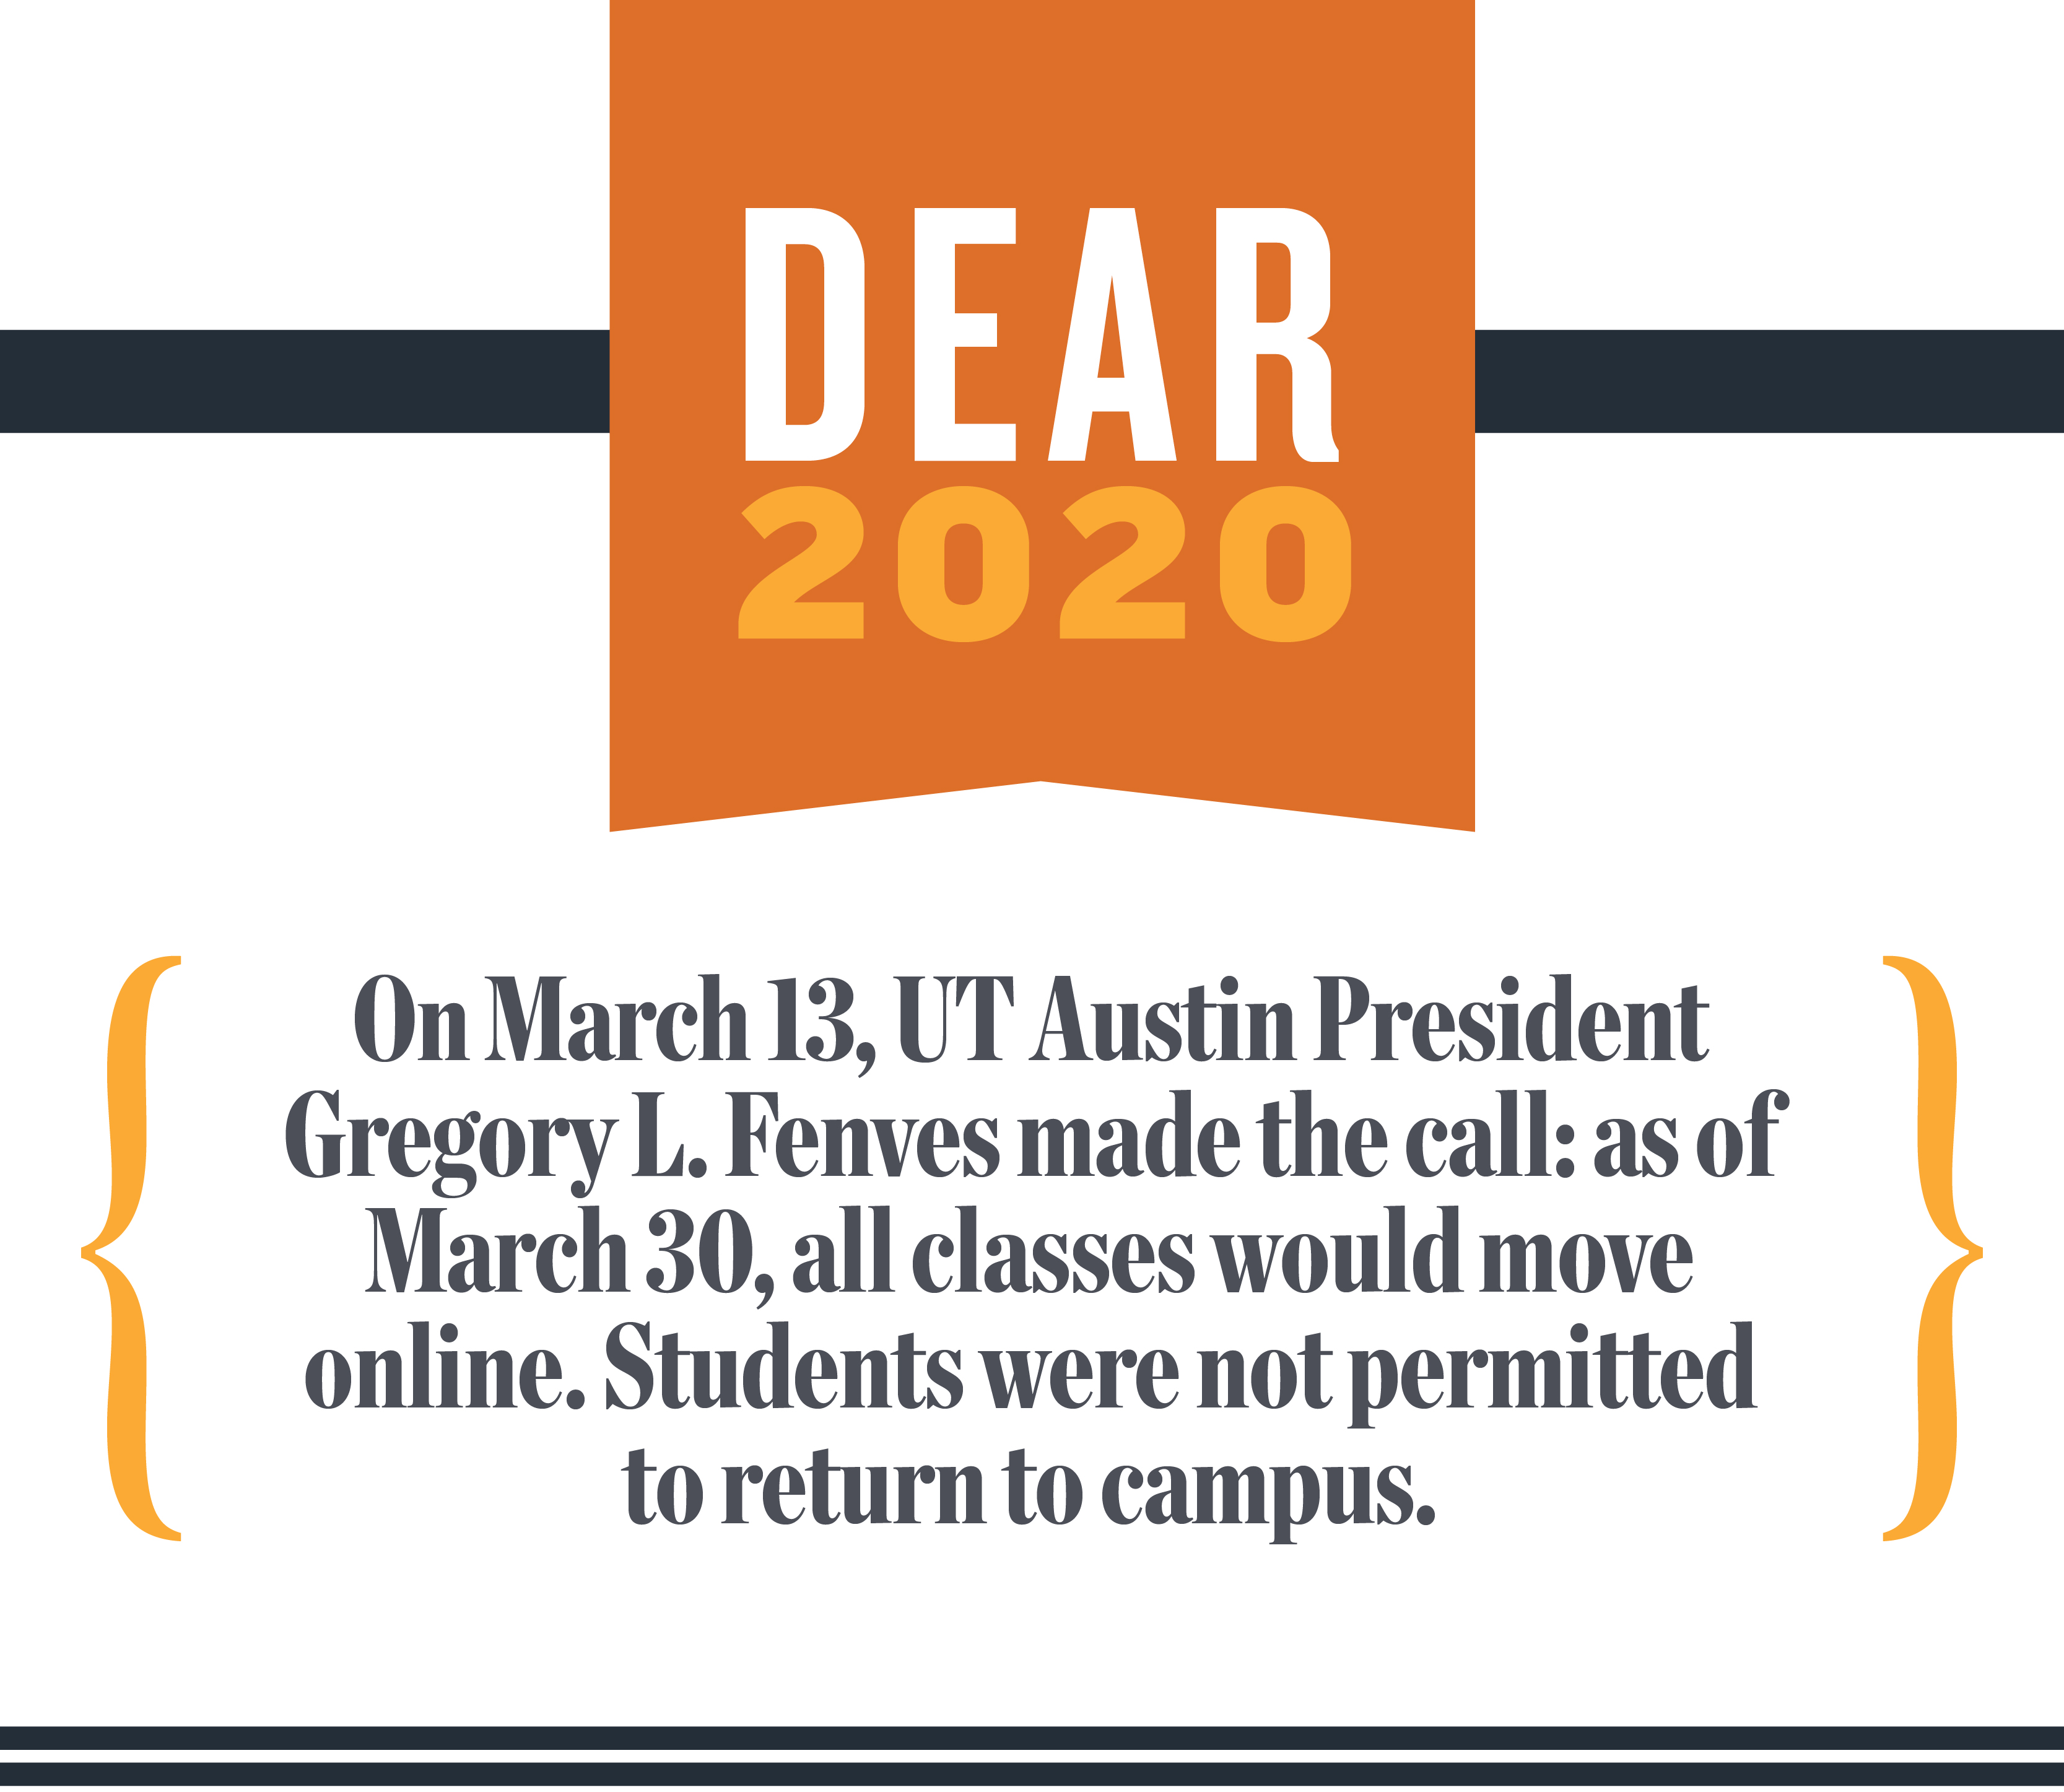 Dear Class of 2020. On March 13, UT Austin President Gregory L. Fenves made the call: as of March 30,  all classes would move online. Students were not permitted to return to campus.